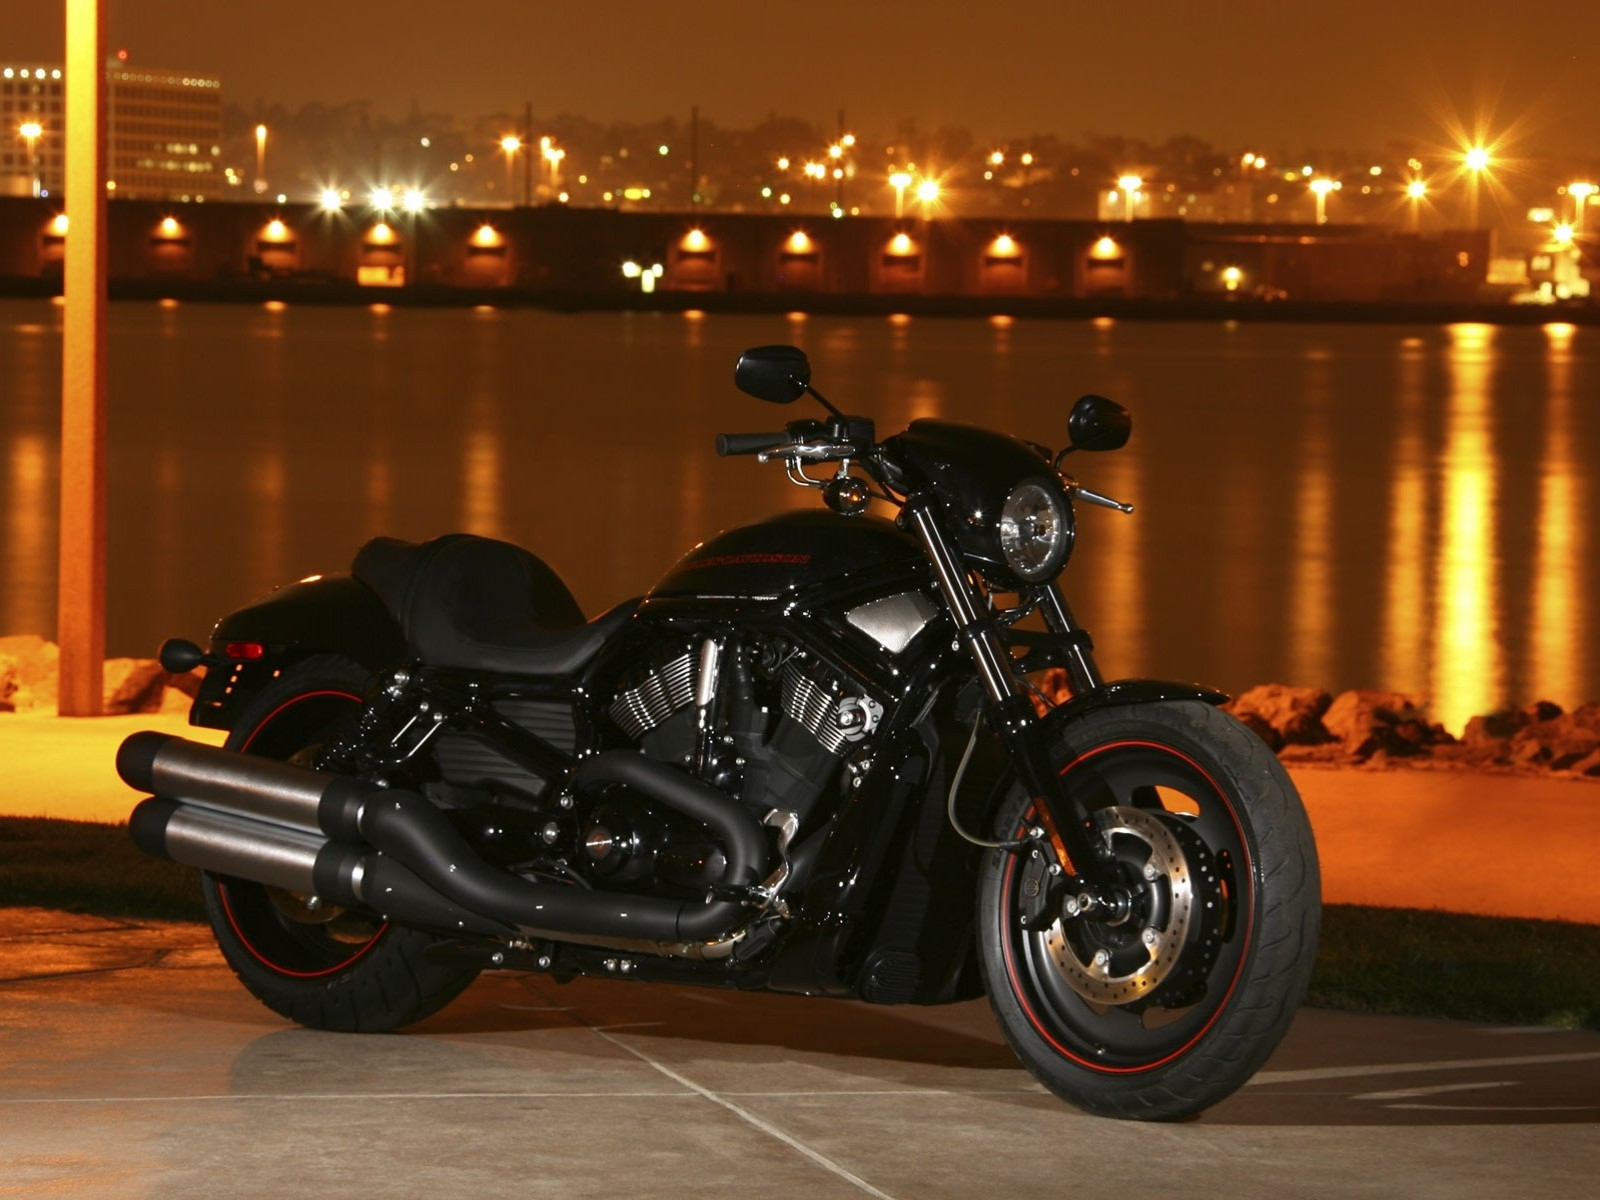 wallpapers harley vrscdx front view in 1600x1200 resolution. Black Bedroom Furniture Sets. Home Design Ideas